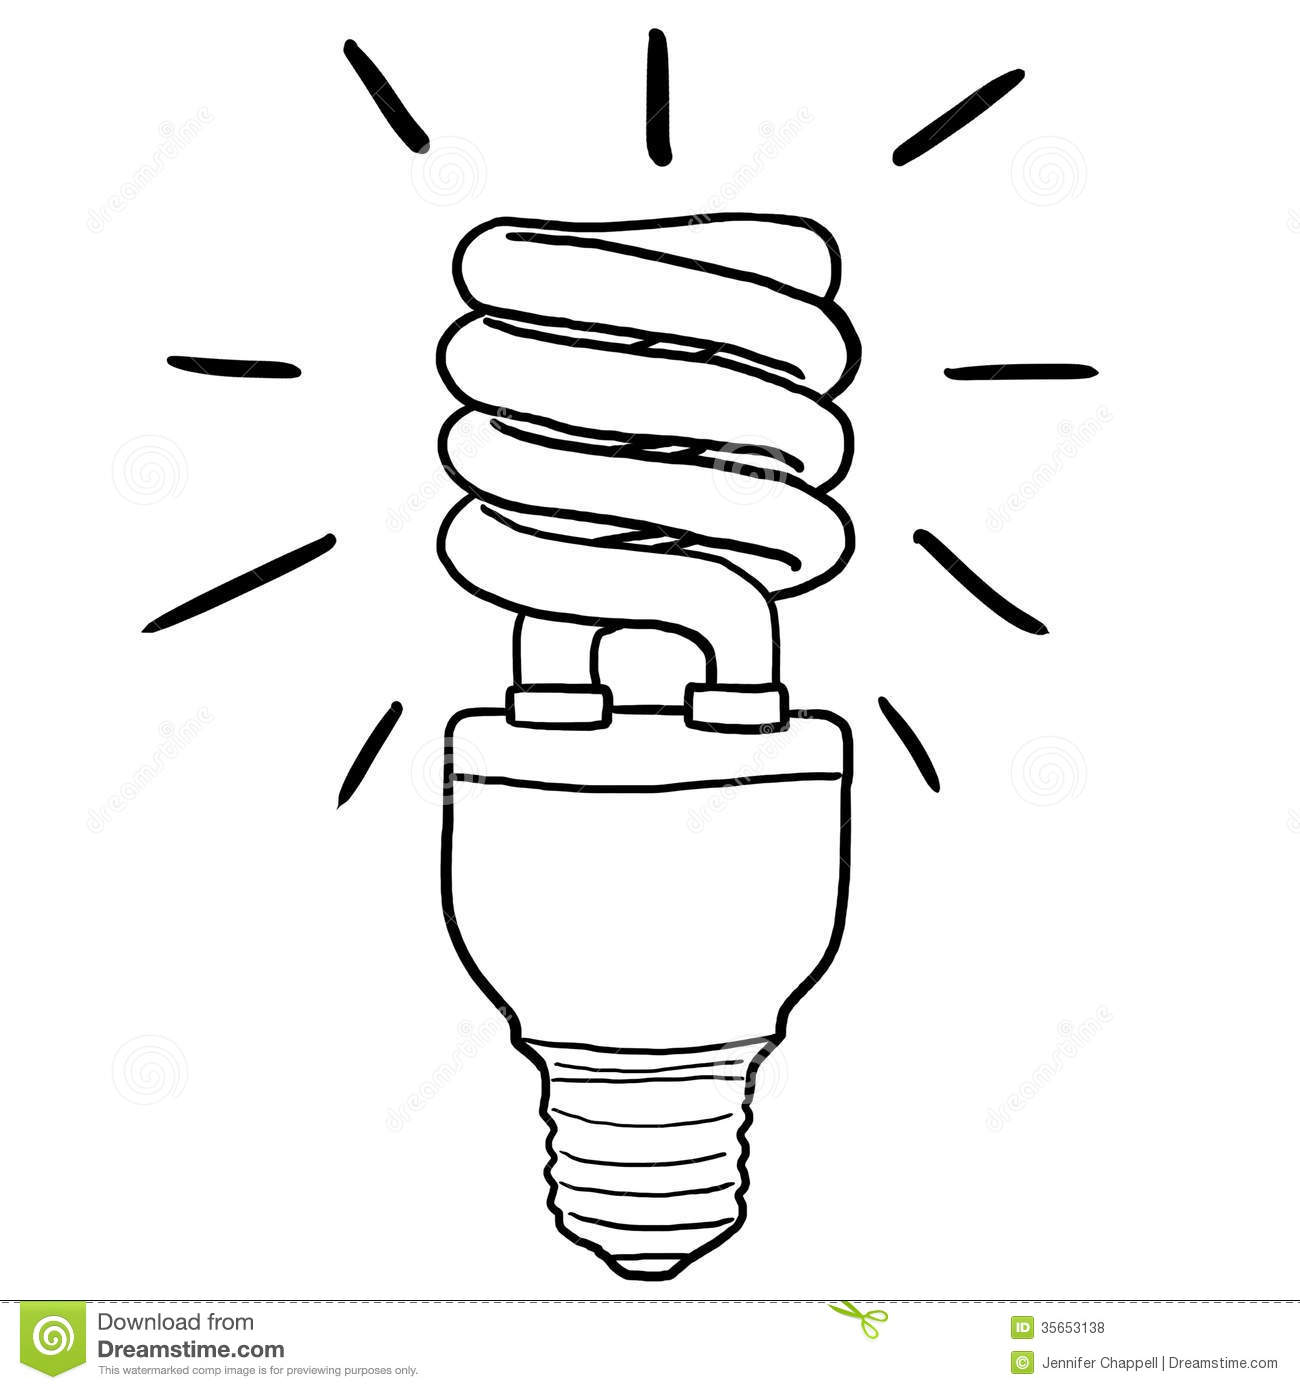 Energy clipart light energy Light Light Energy Energy Winsome